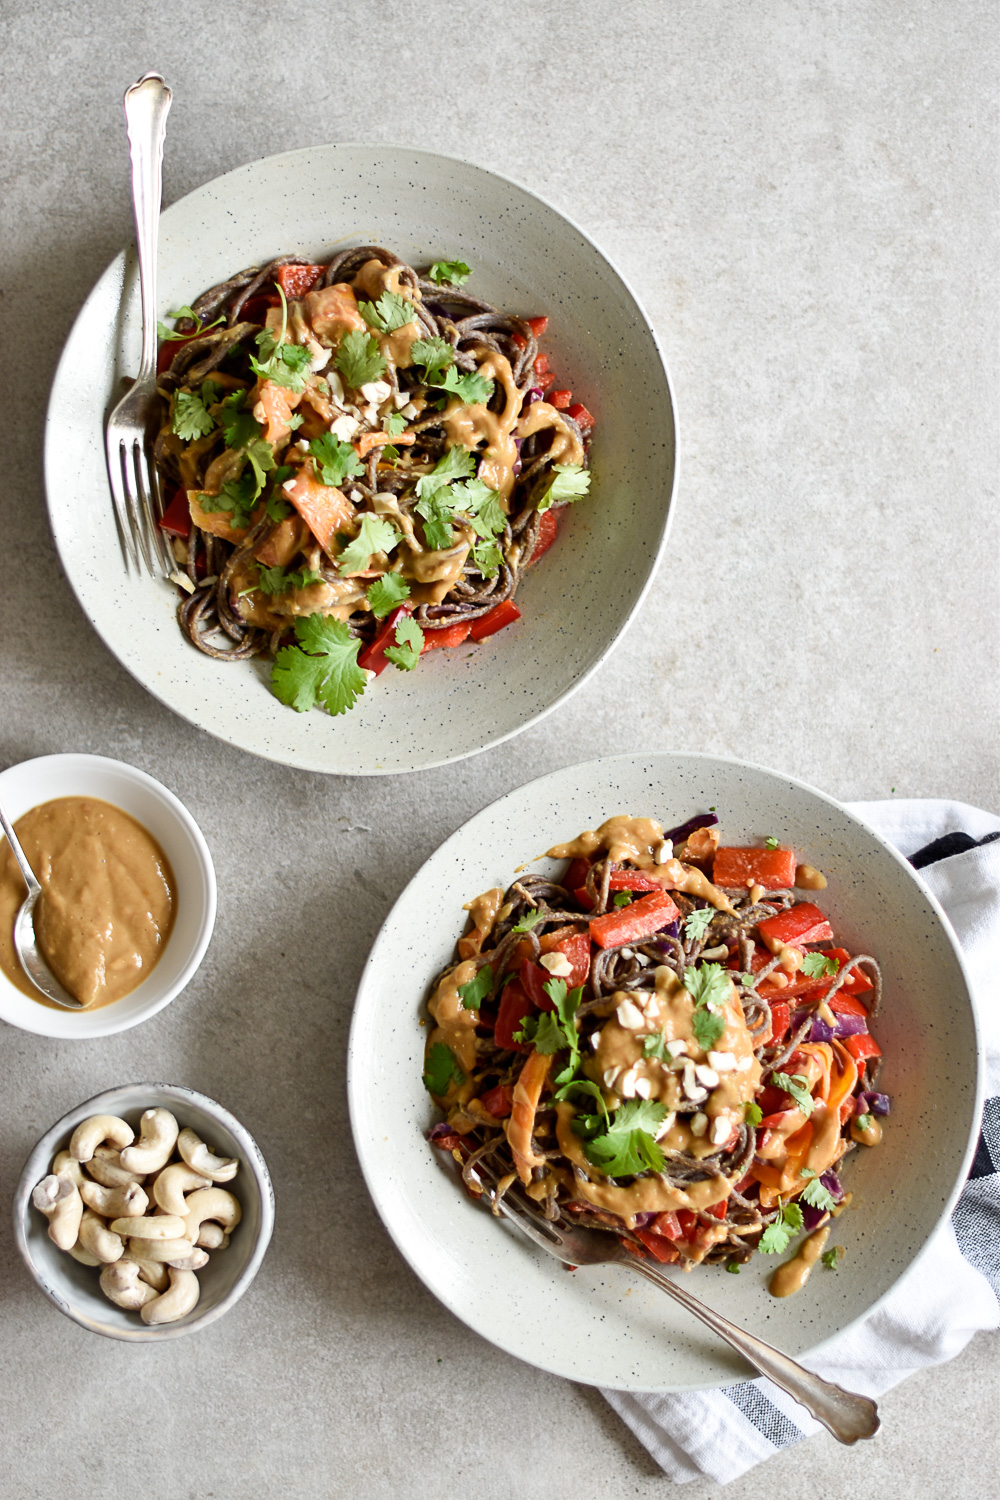 Easy buckwheat miso spaghetti and an Alnavit* giveaway!